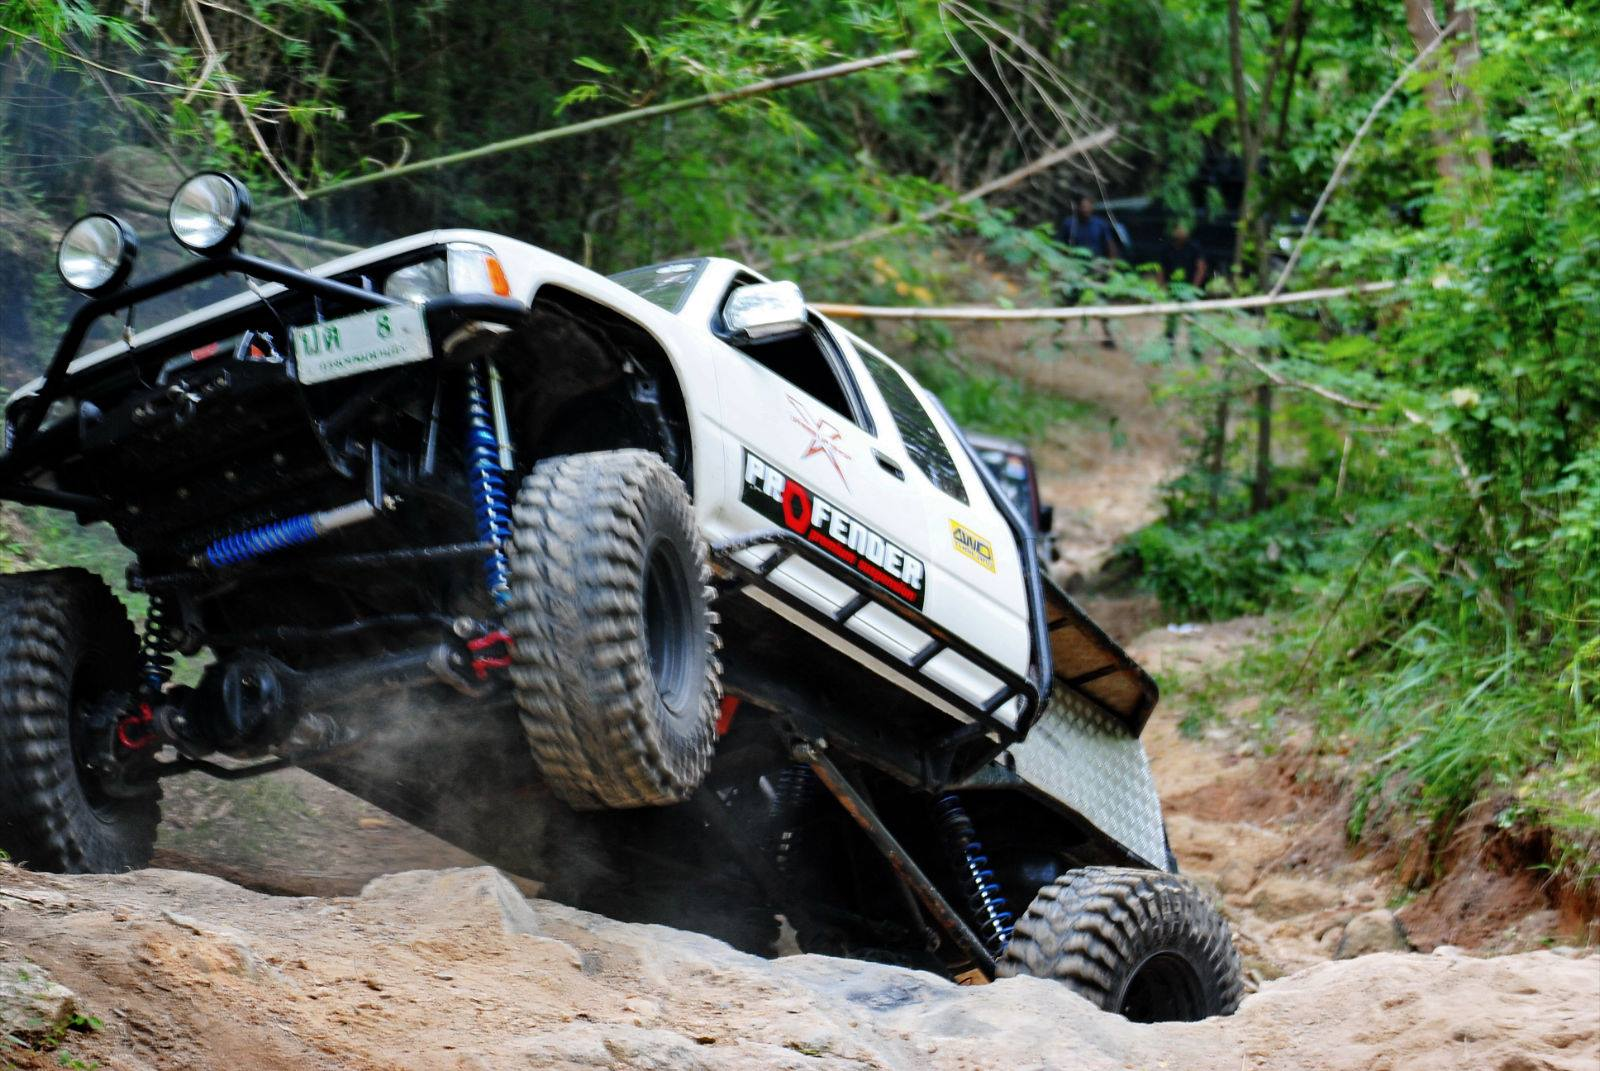 Profender Toyota Hilux one wheel in air